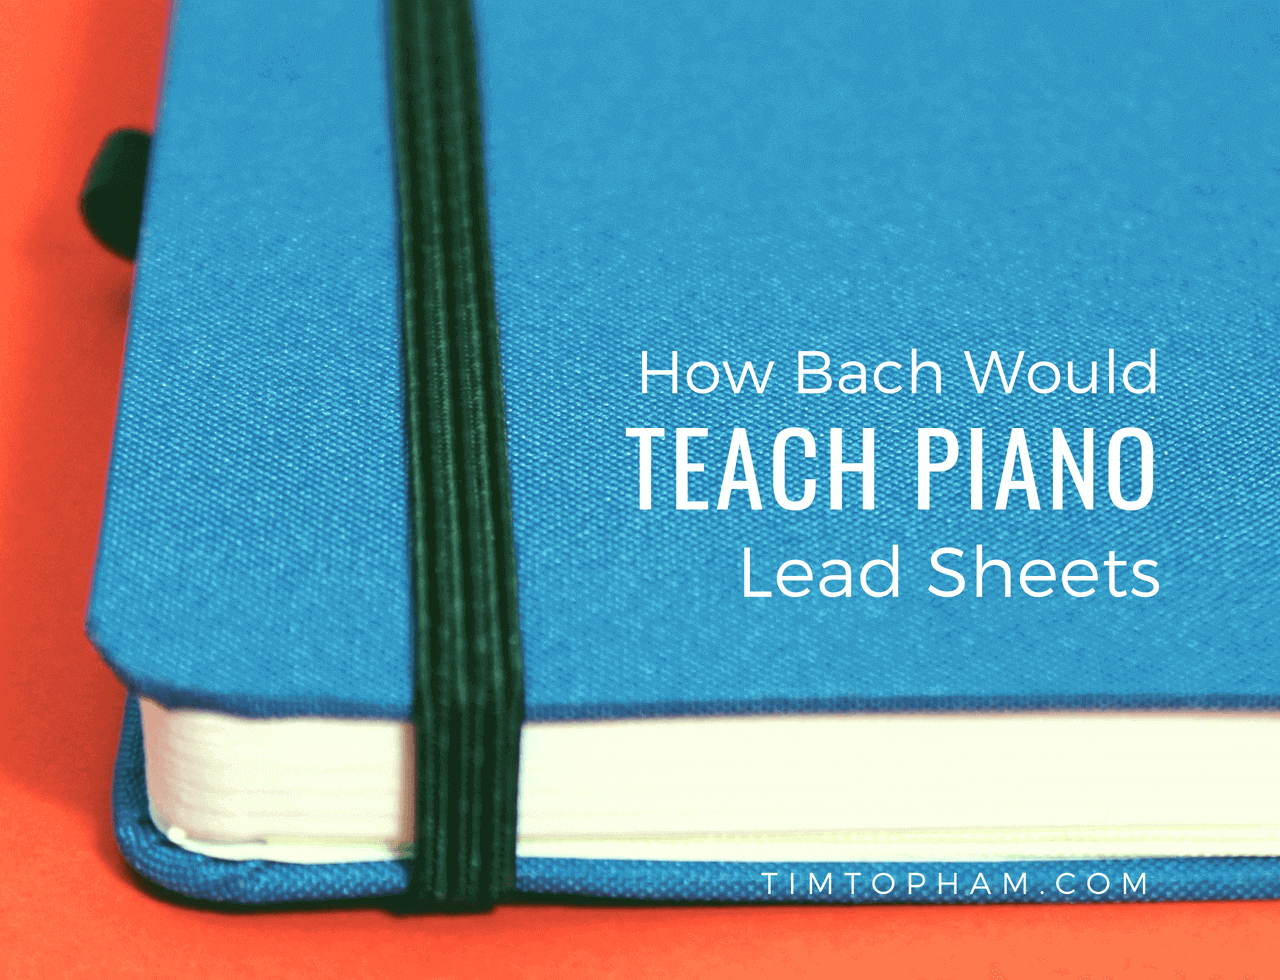 How-Bach-Would-Teach-Piano-Lead-Sheets